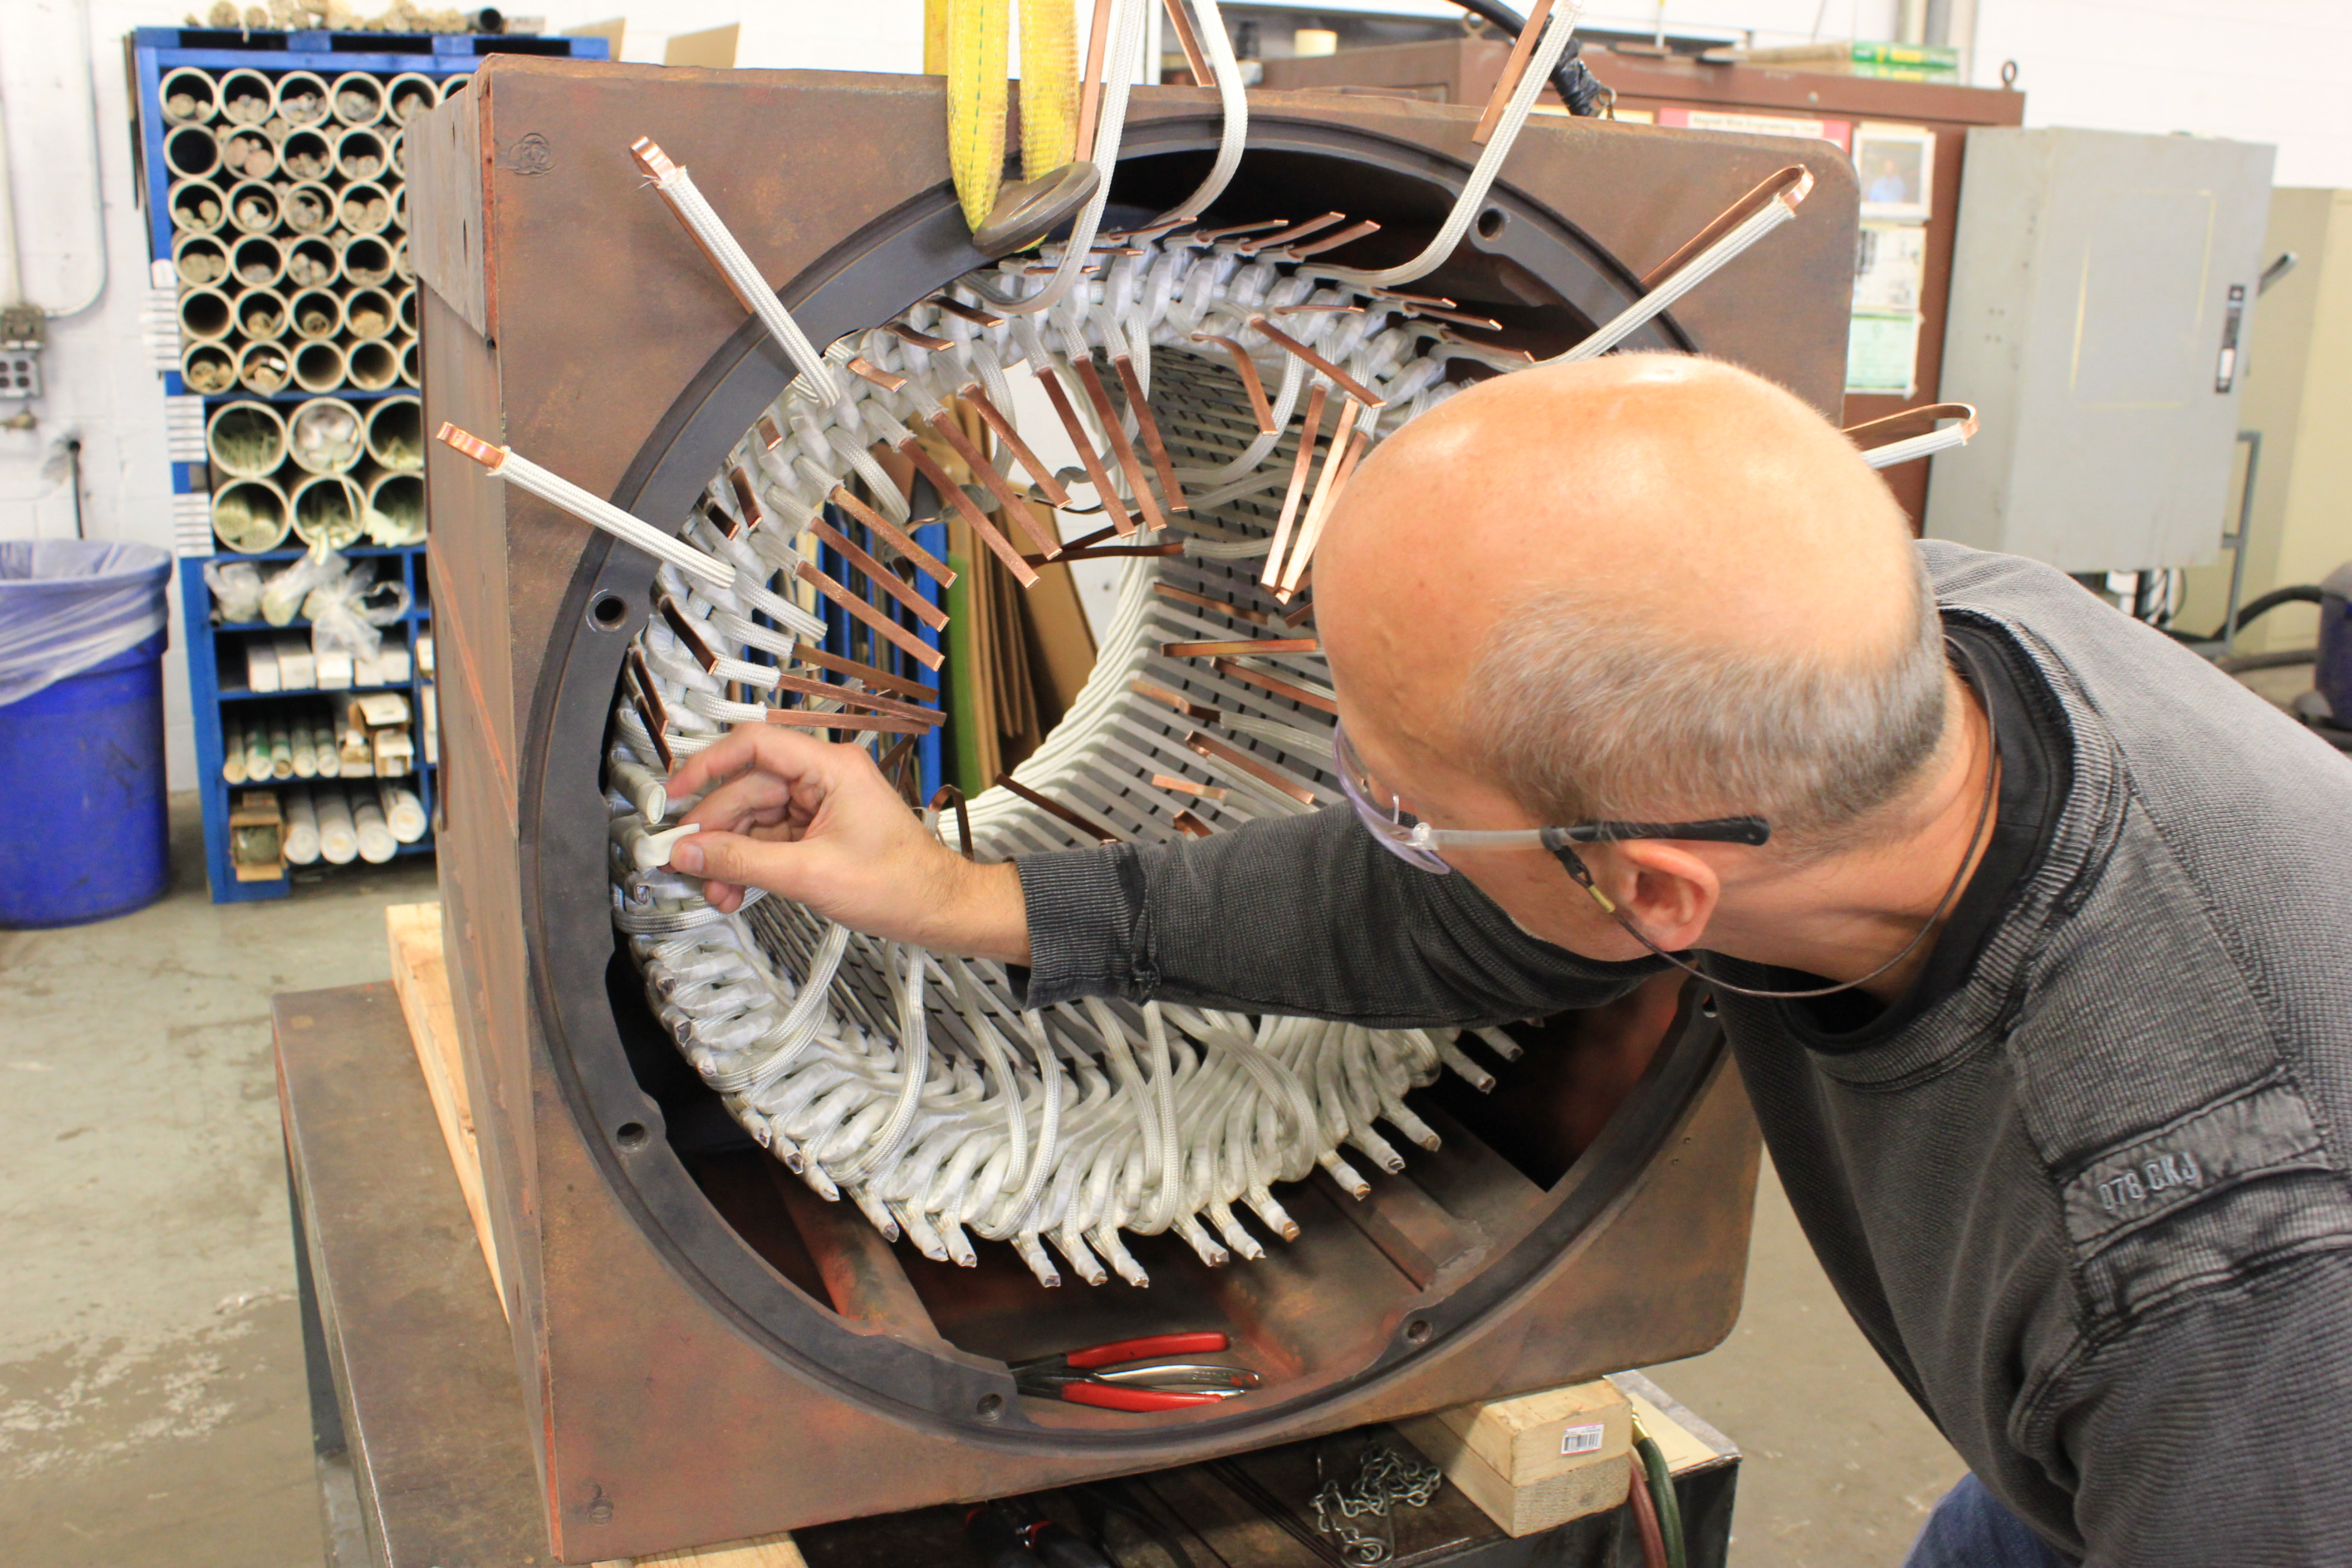 Medium Voltage Rewinds-HECO Industrial-2-All Systems Go